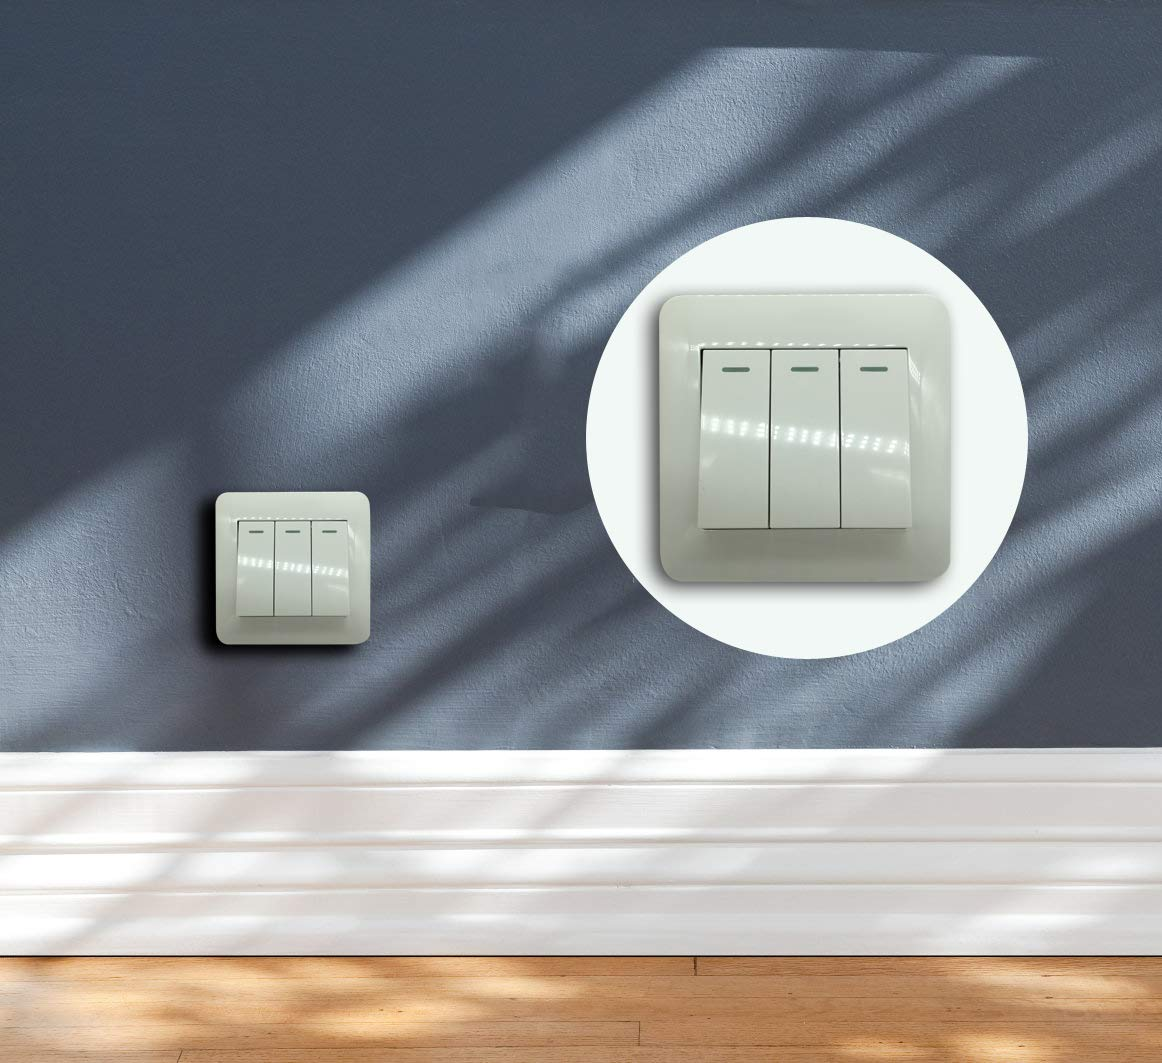 Supermait Wall Switch Light Switch Three Button 3 Gang 1 Way Control On//Off Switches for Lamps Fans Appliances